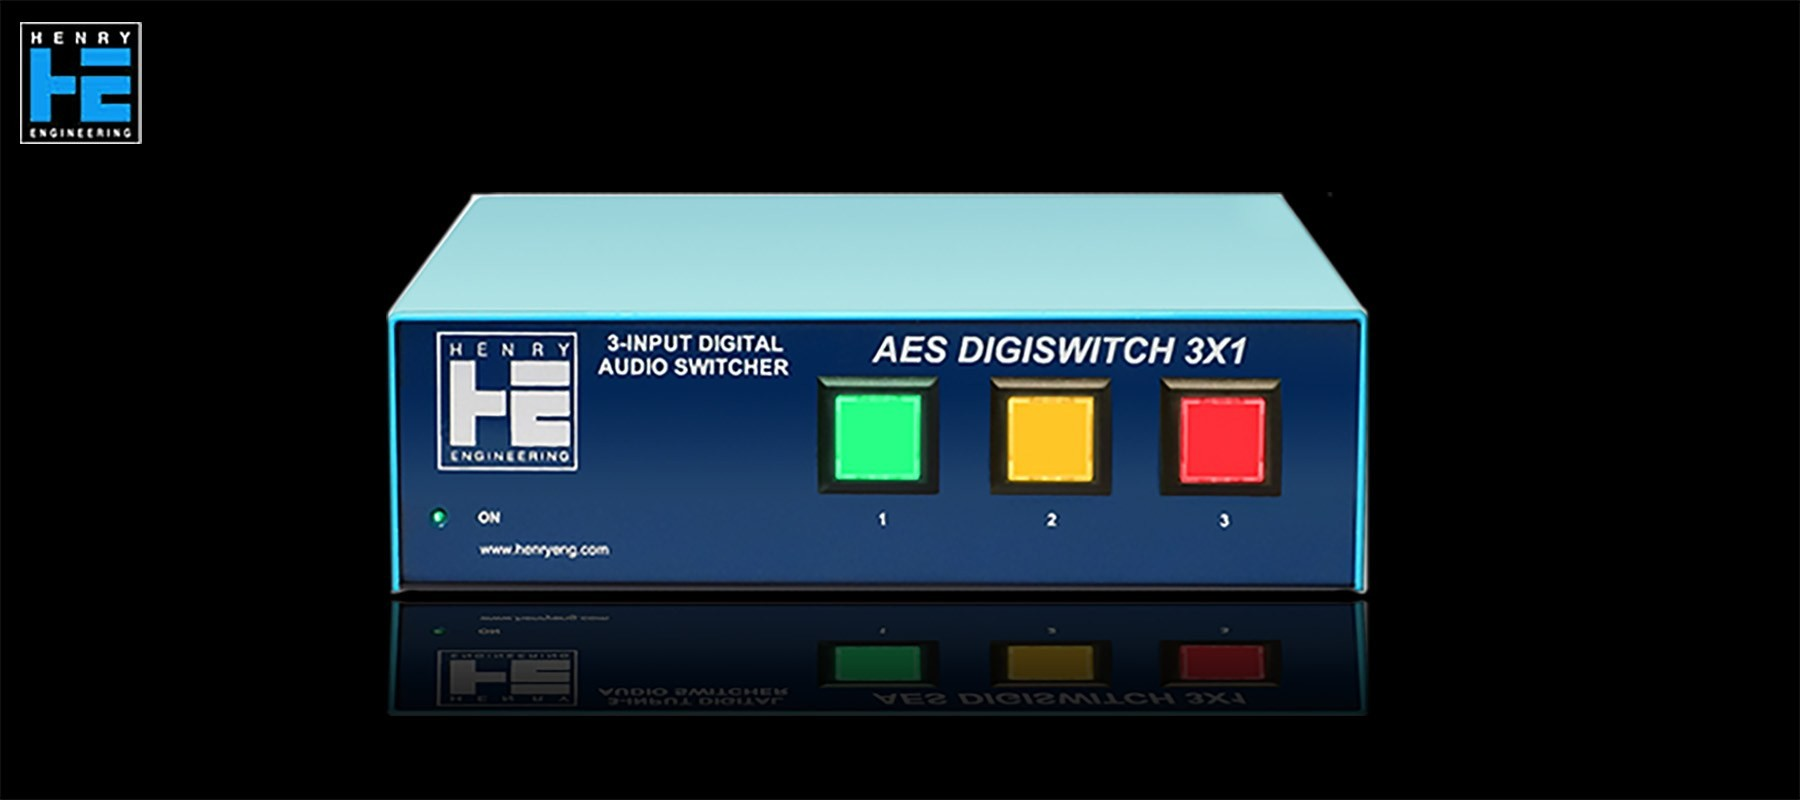 Henry Engineering AES DigiSwitch 3X1 - Avant